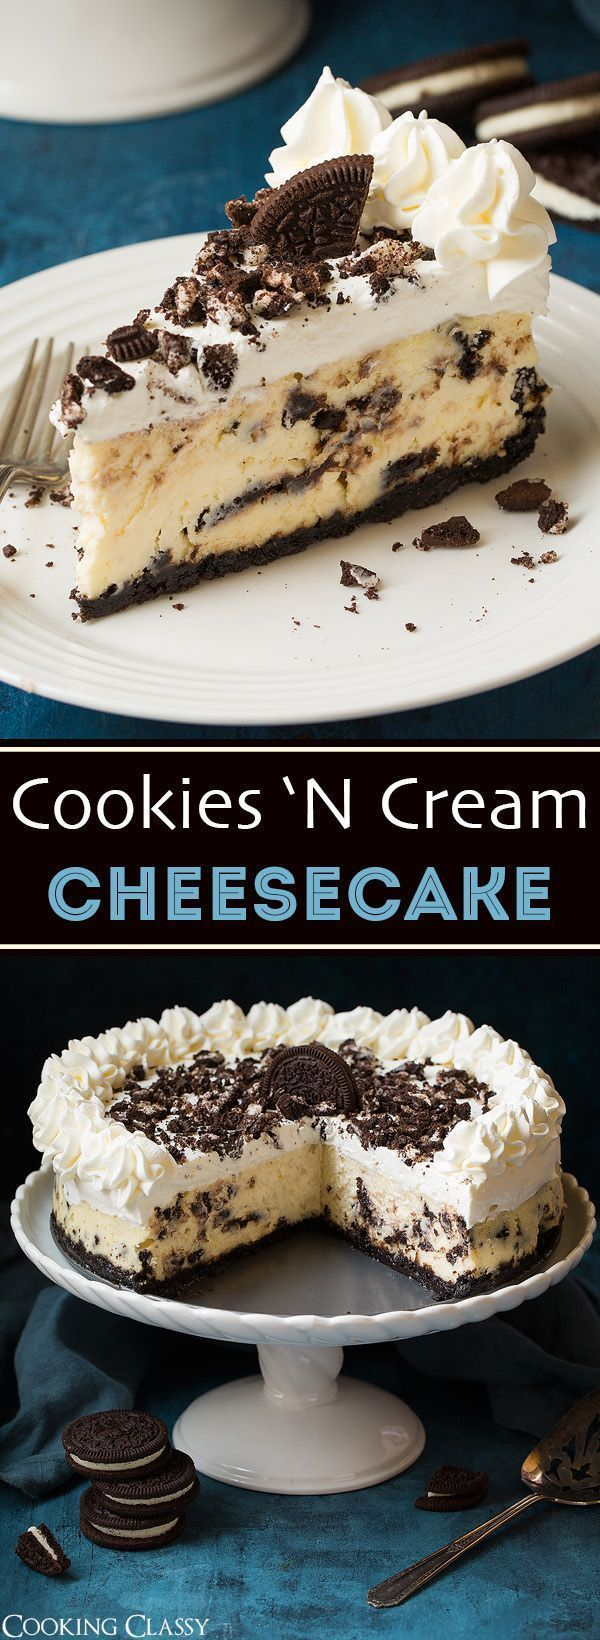 Photo of Oreo Cheesecake (Always a Crowd Favorite!) – Cooking Classy